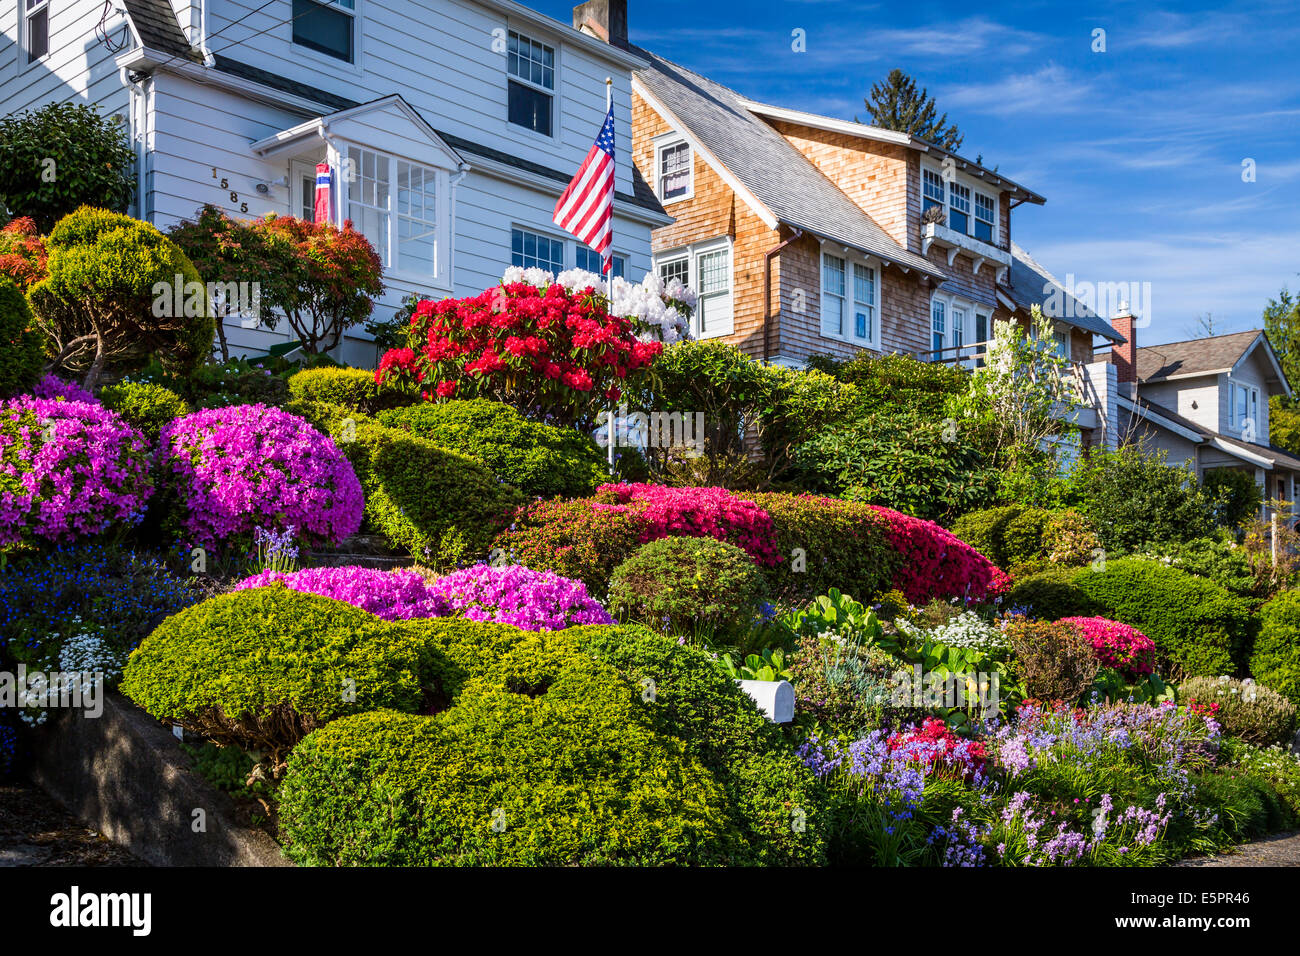 ein haus mit einem rhododendron und azaleen garten in astoria oregon usa stockfoto bild. Black Bedroom Furniture Sets. Home Design Ideas